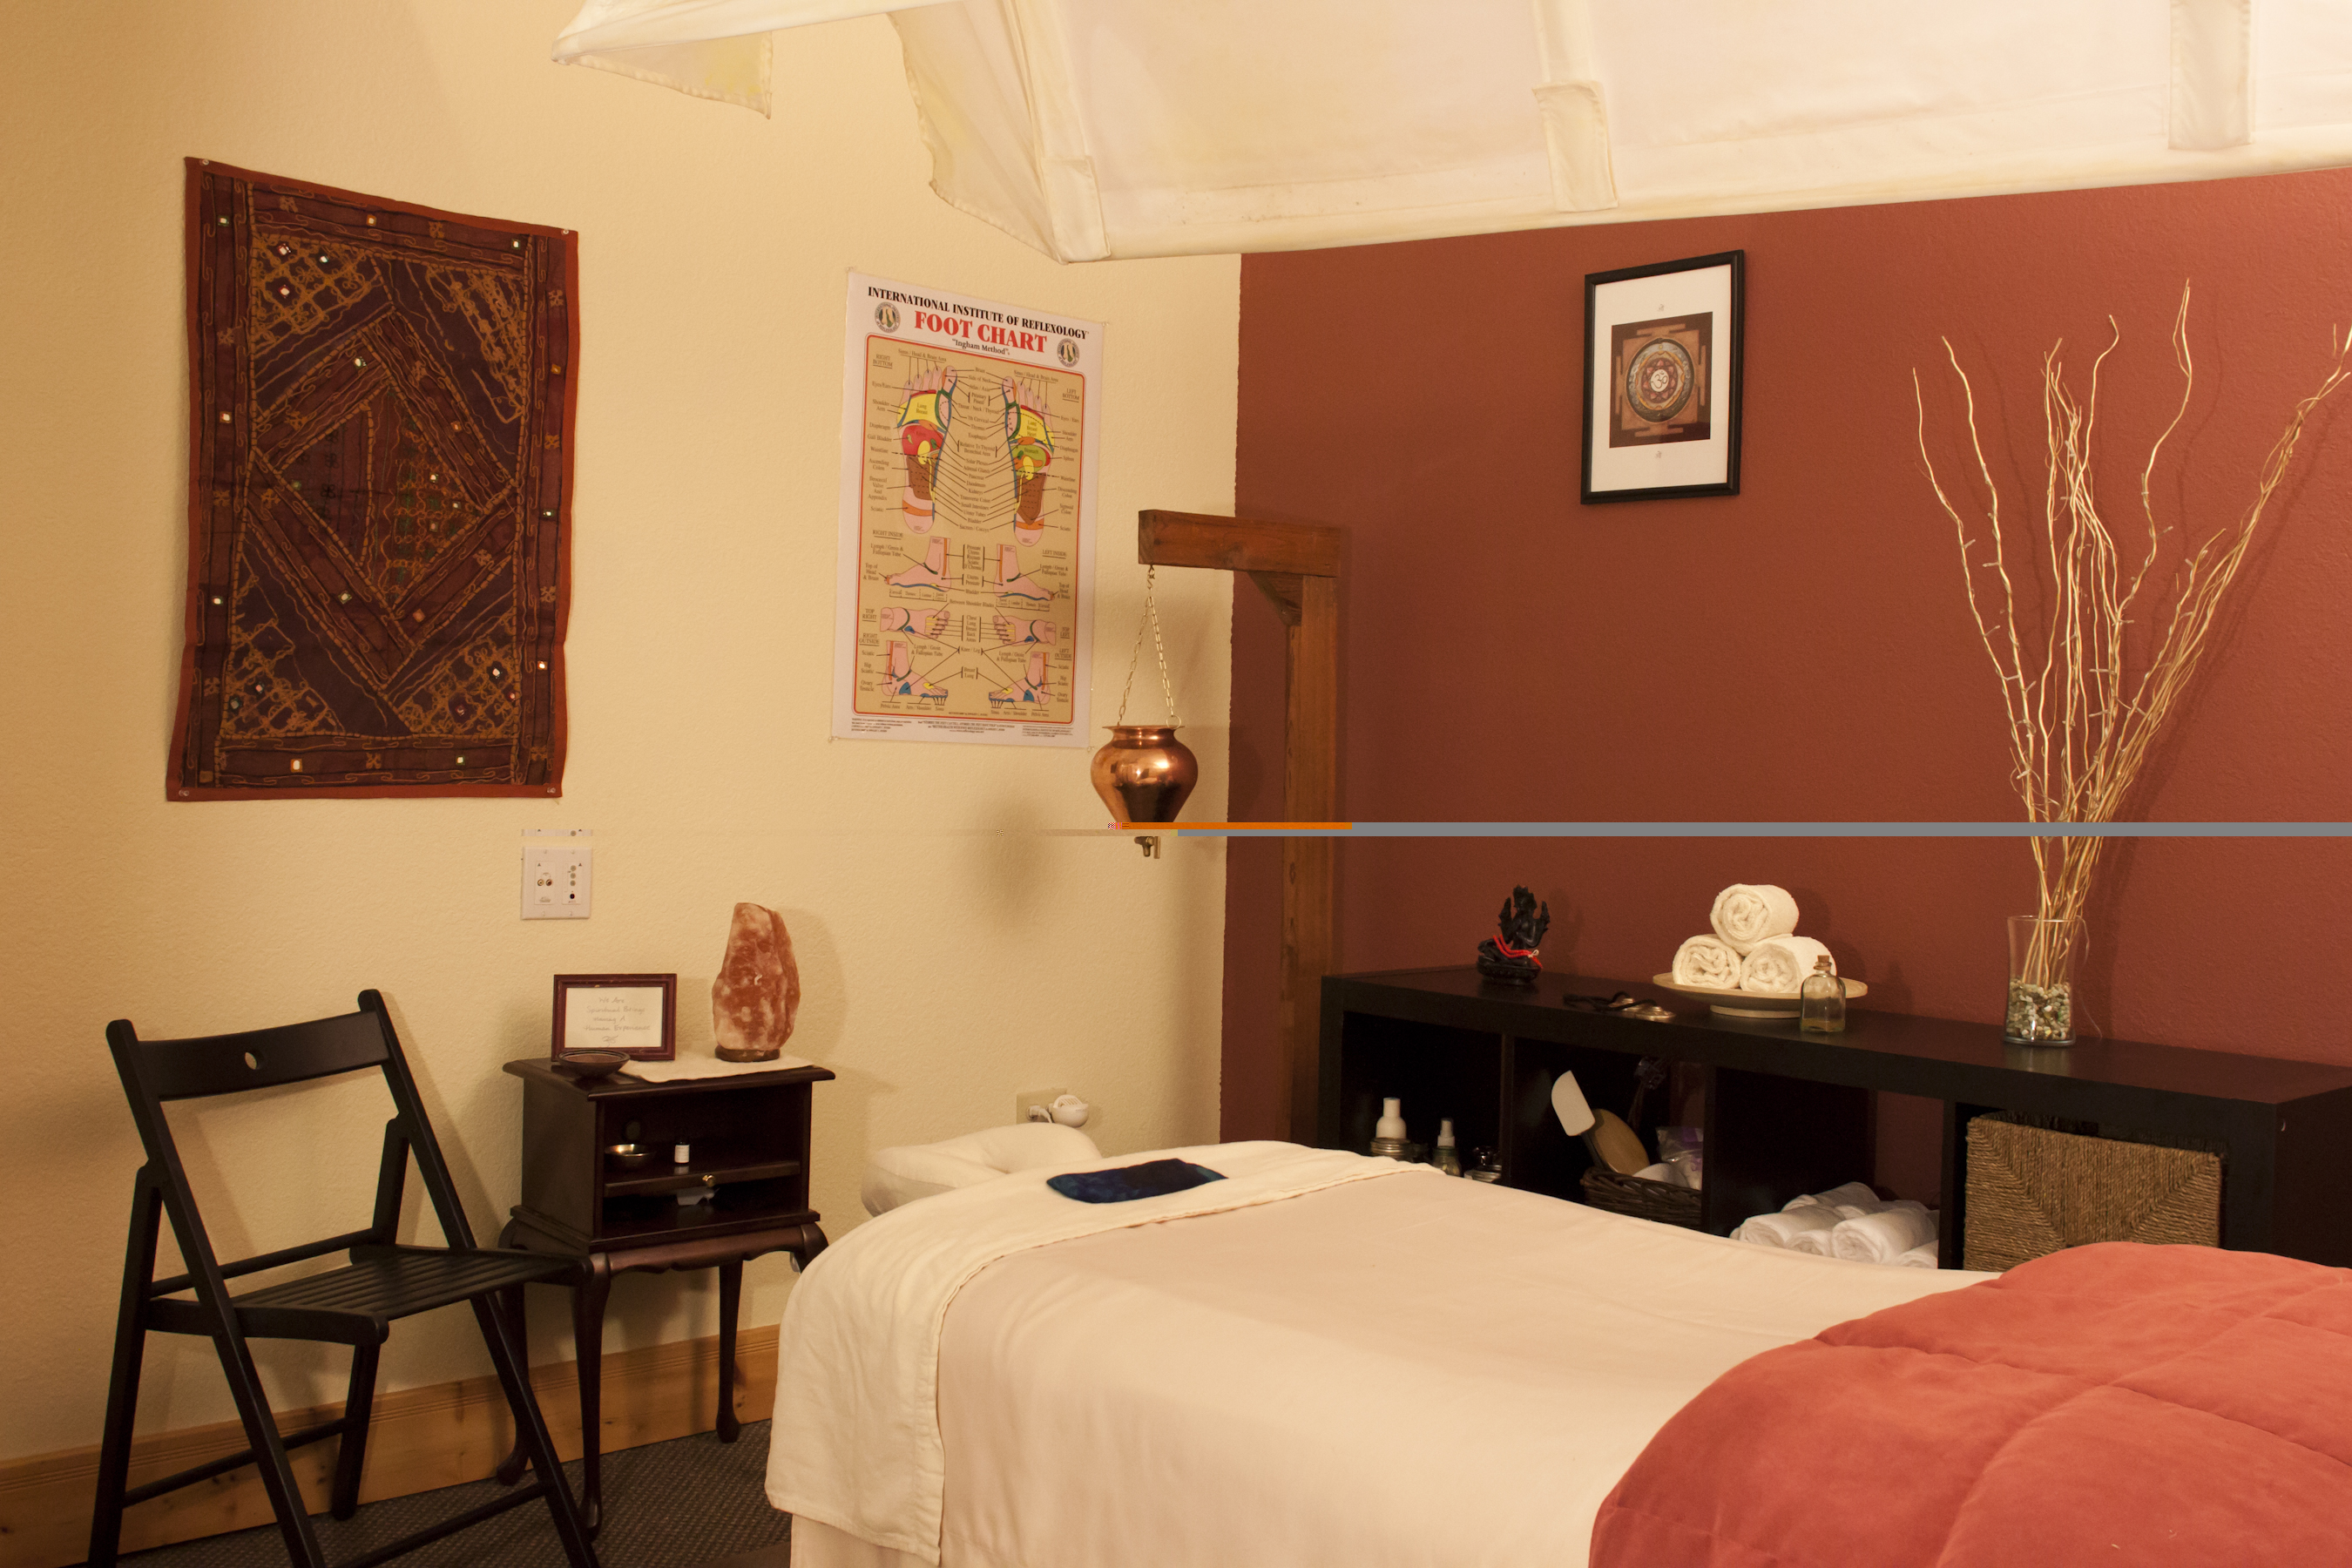 Breckenridge Massage Studio